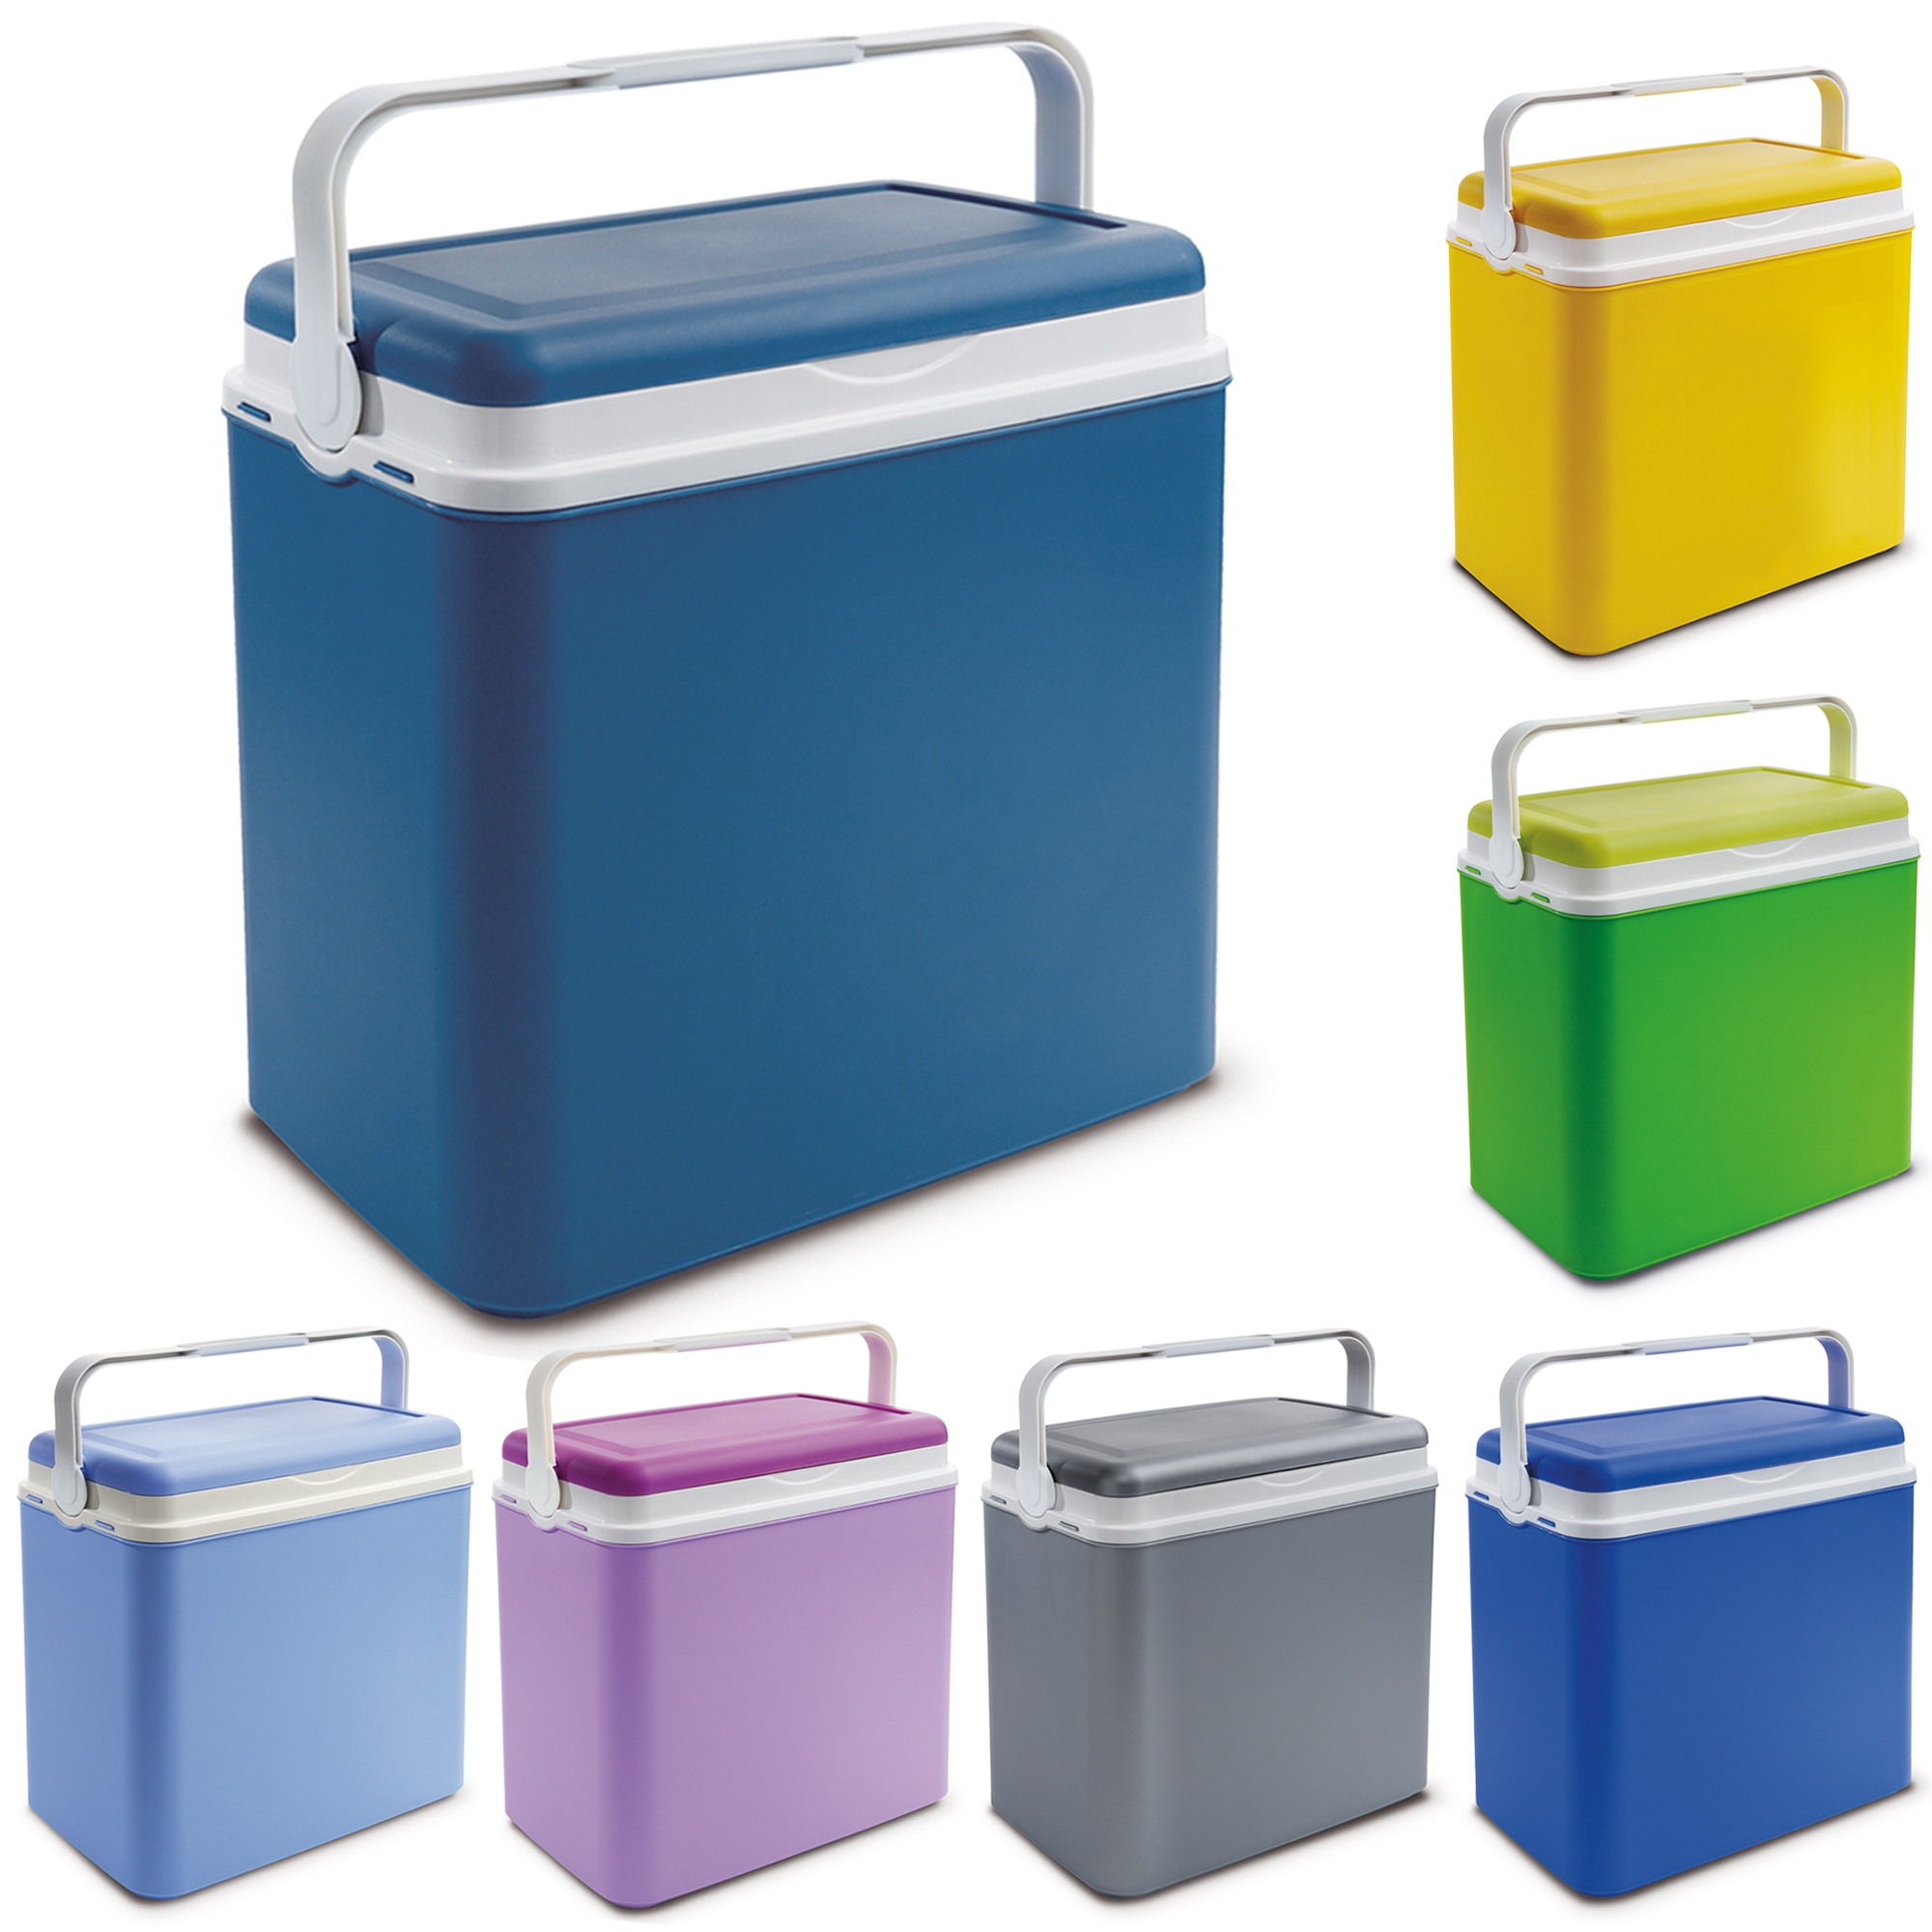 Ice Box Cooler : Large litre cooler box camping beach lunch picnic